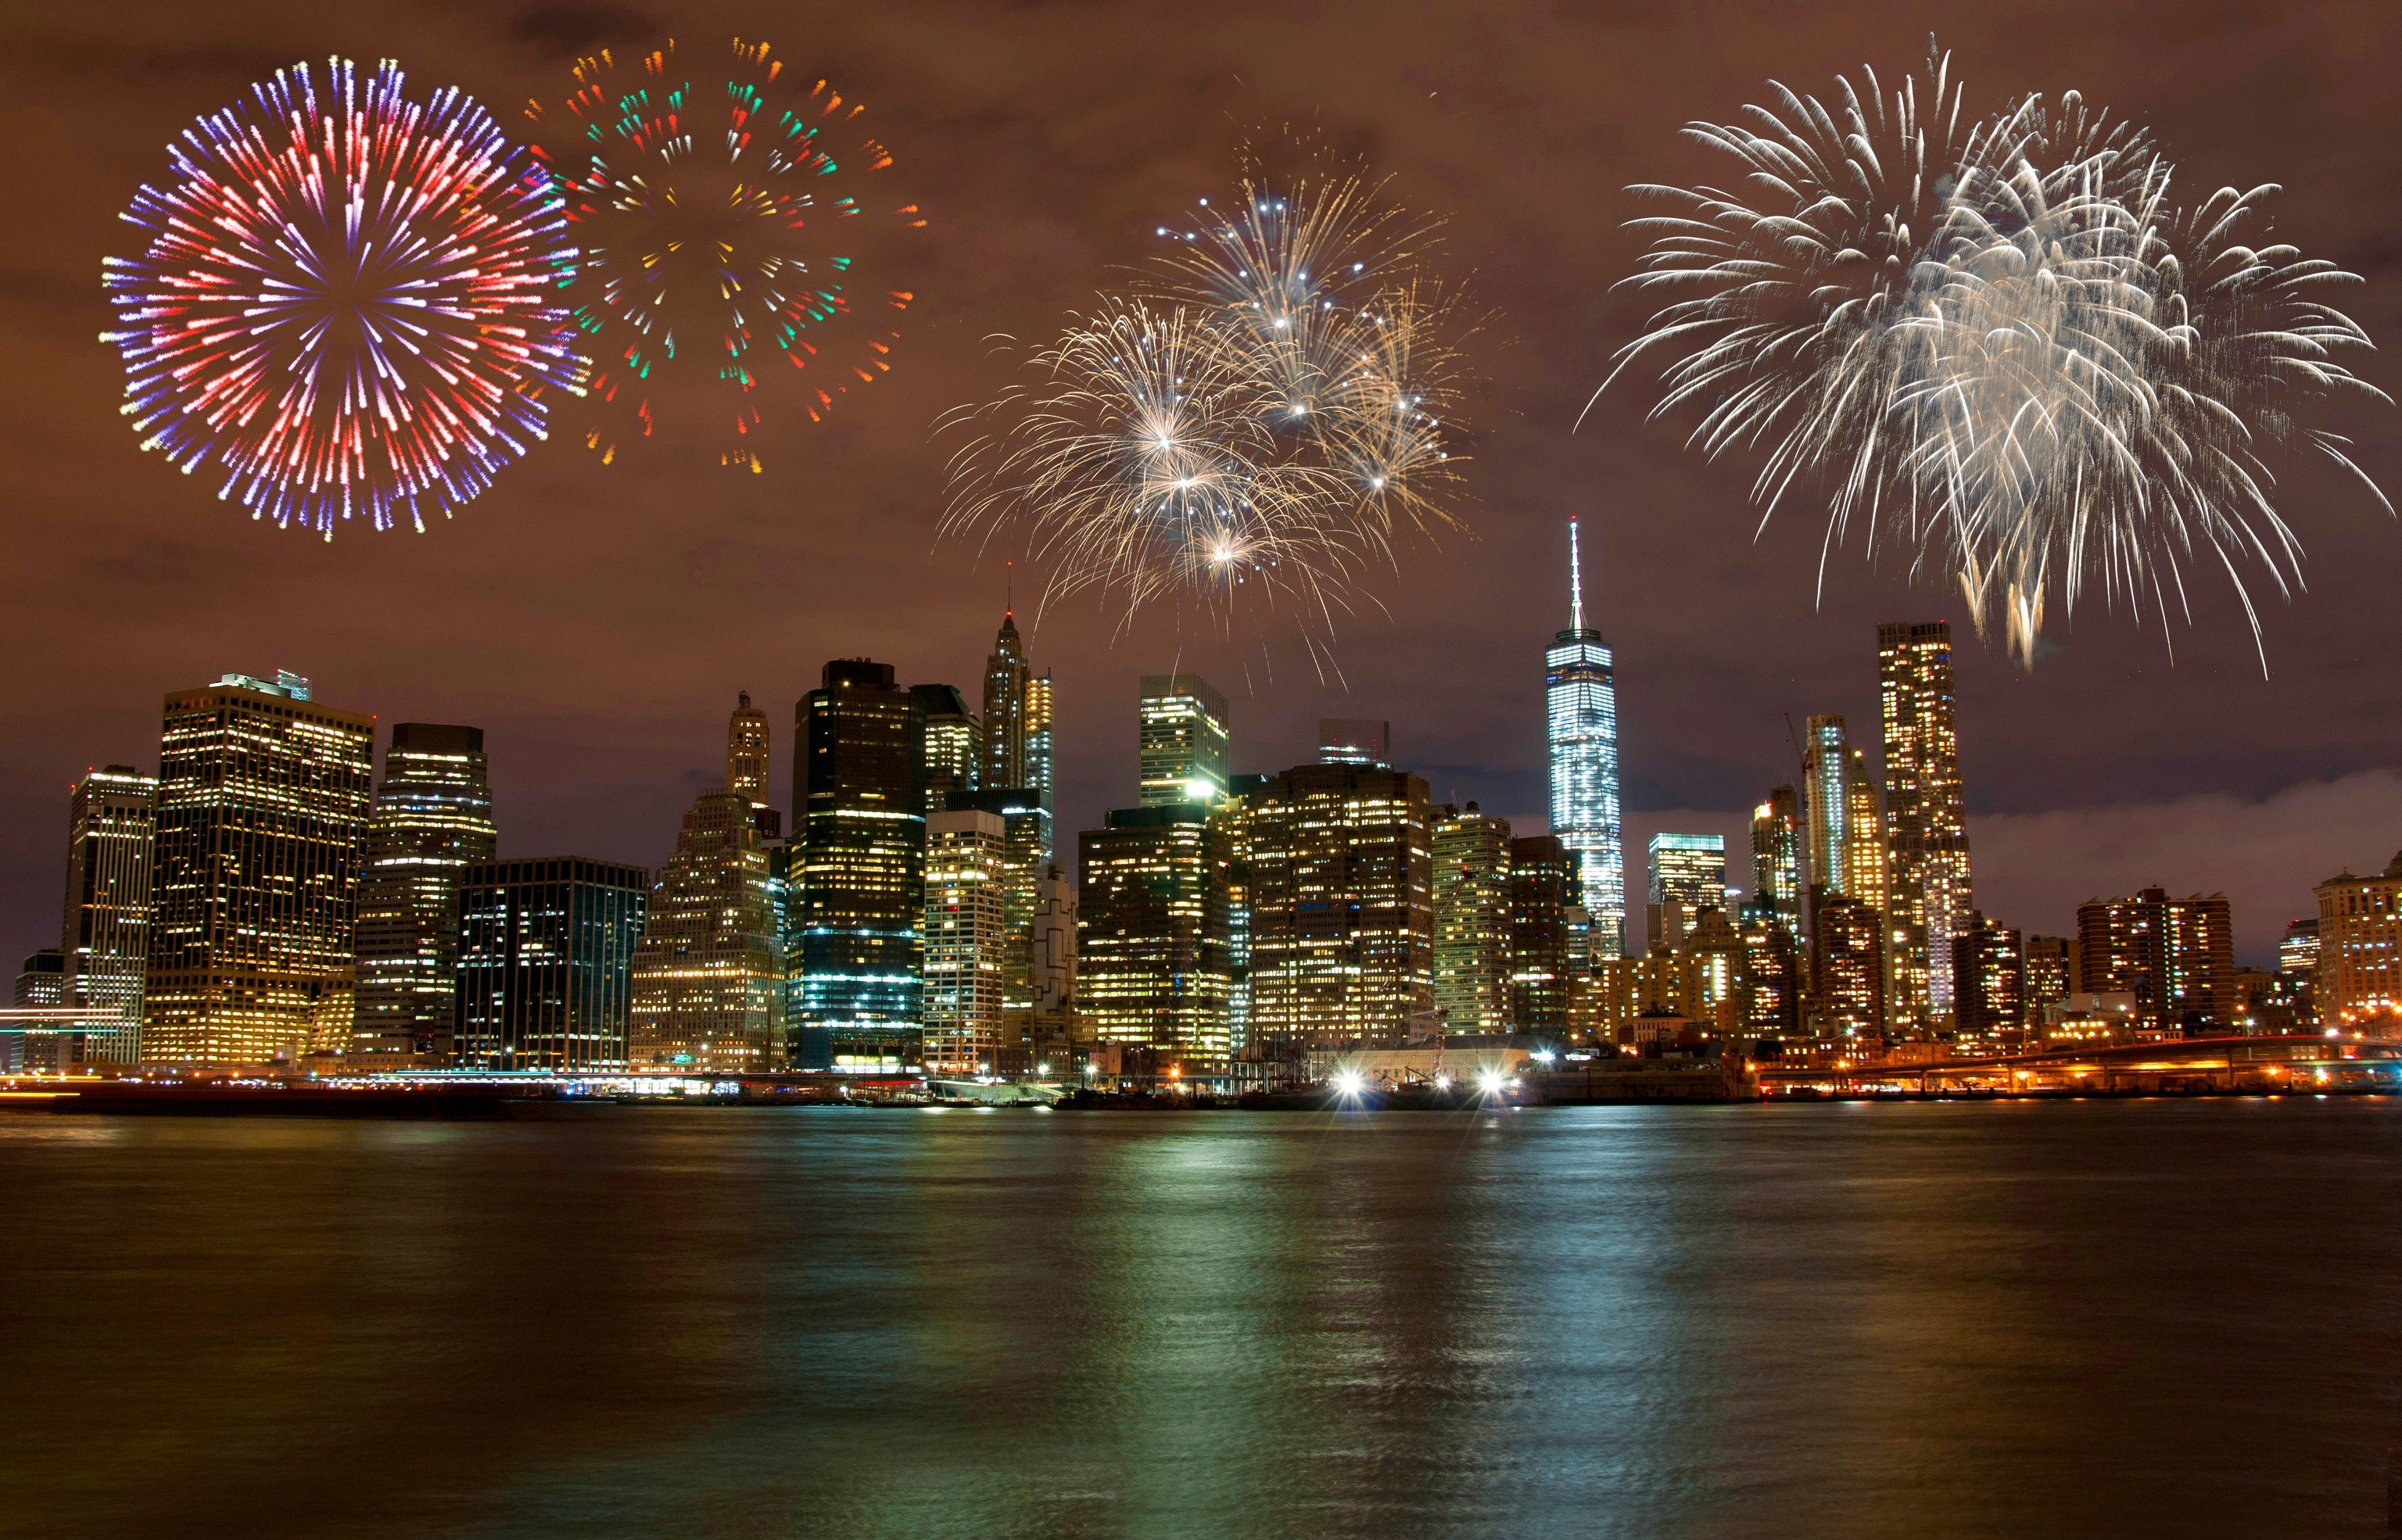 Budget Trip Ideas fireworks outdoor object night skyline outdoor recreation event recreation cityscape